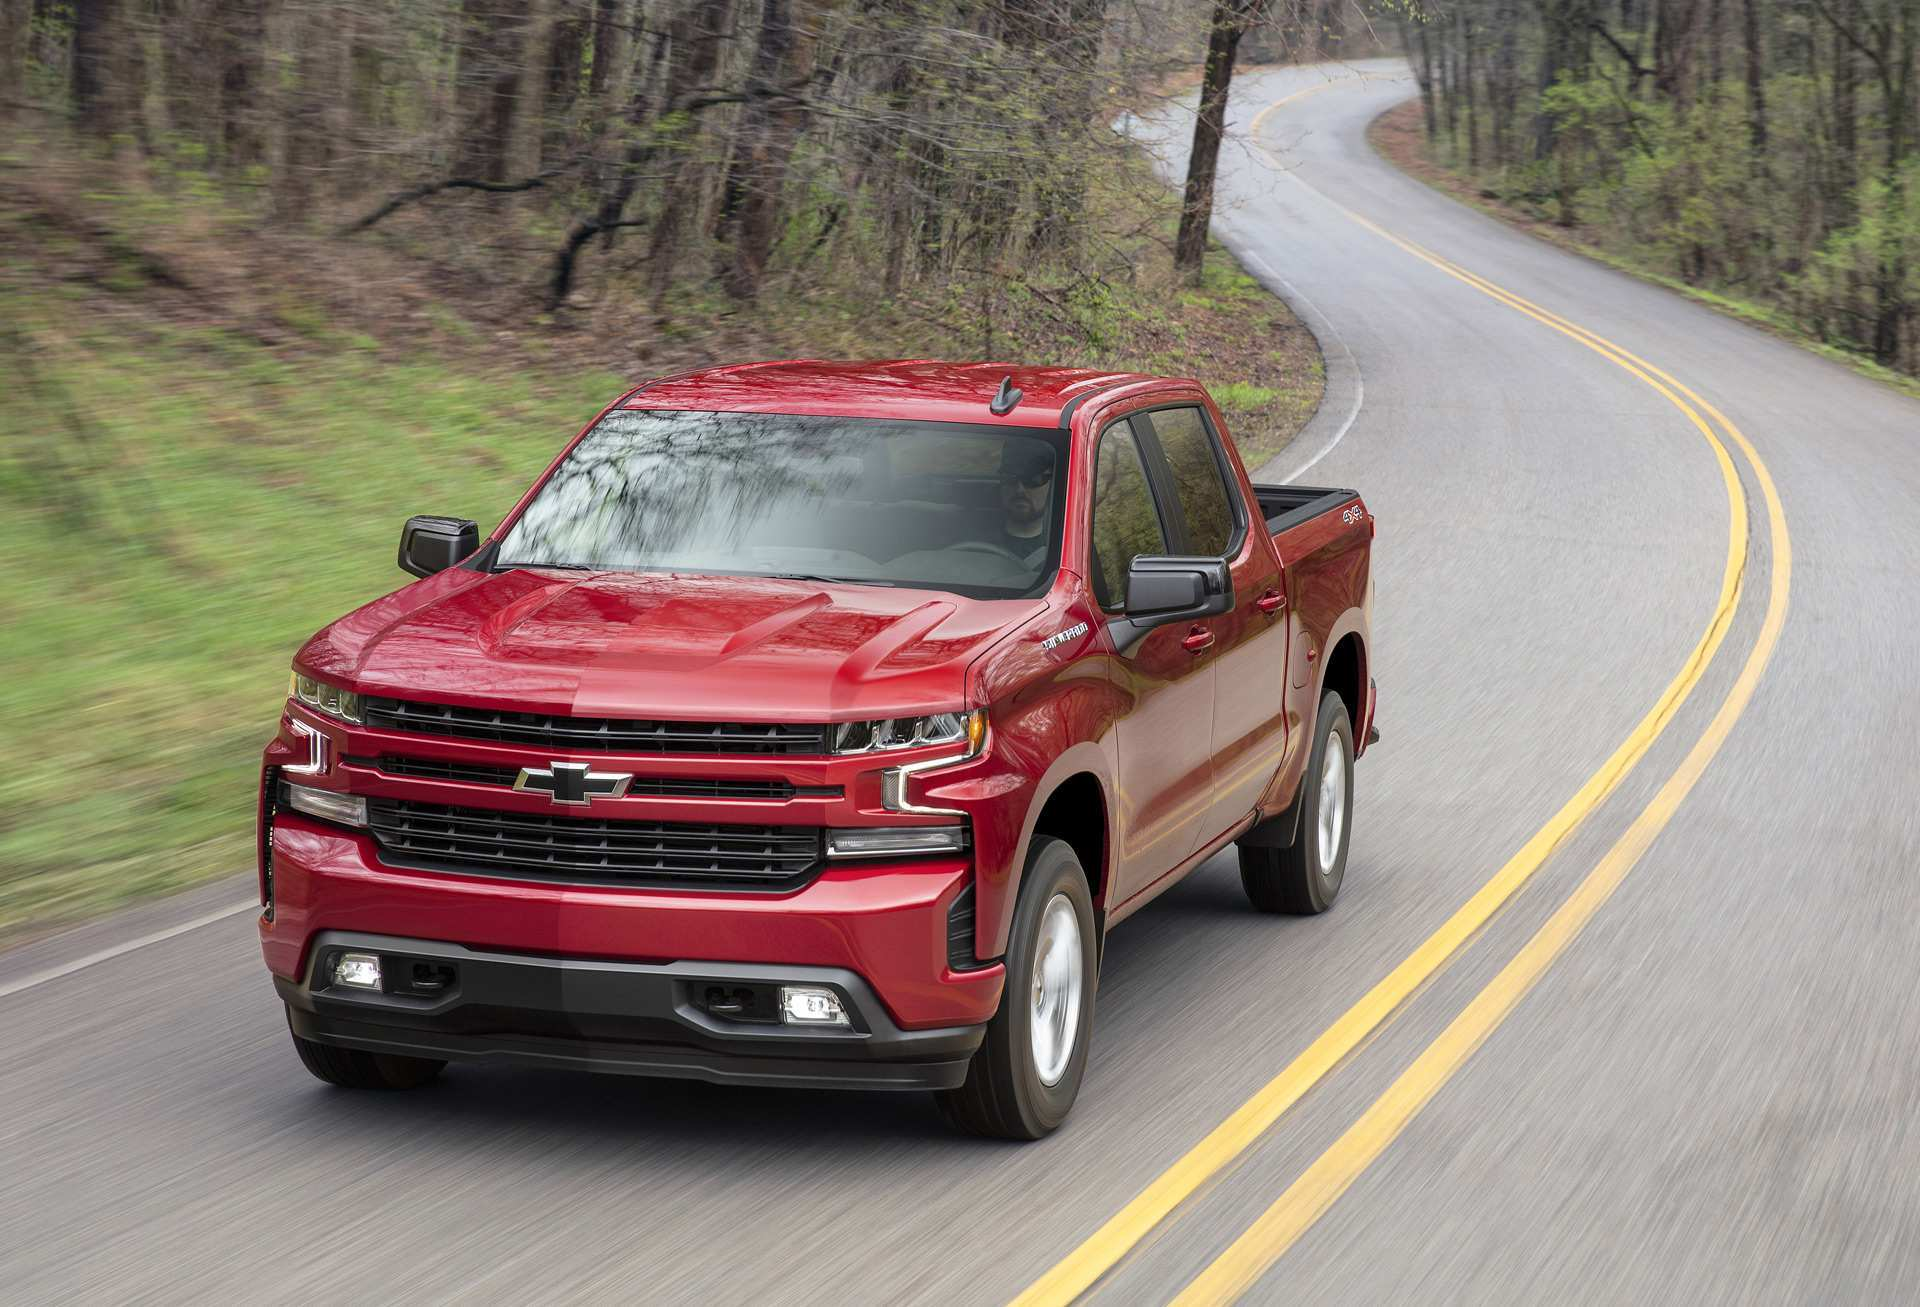 38 All New 2019 Chevrolet Diesel Price And Review